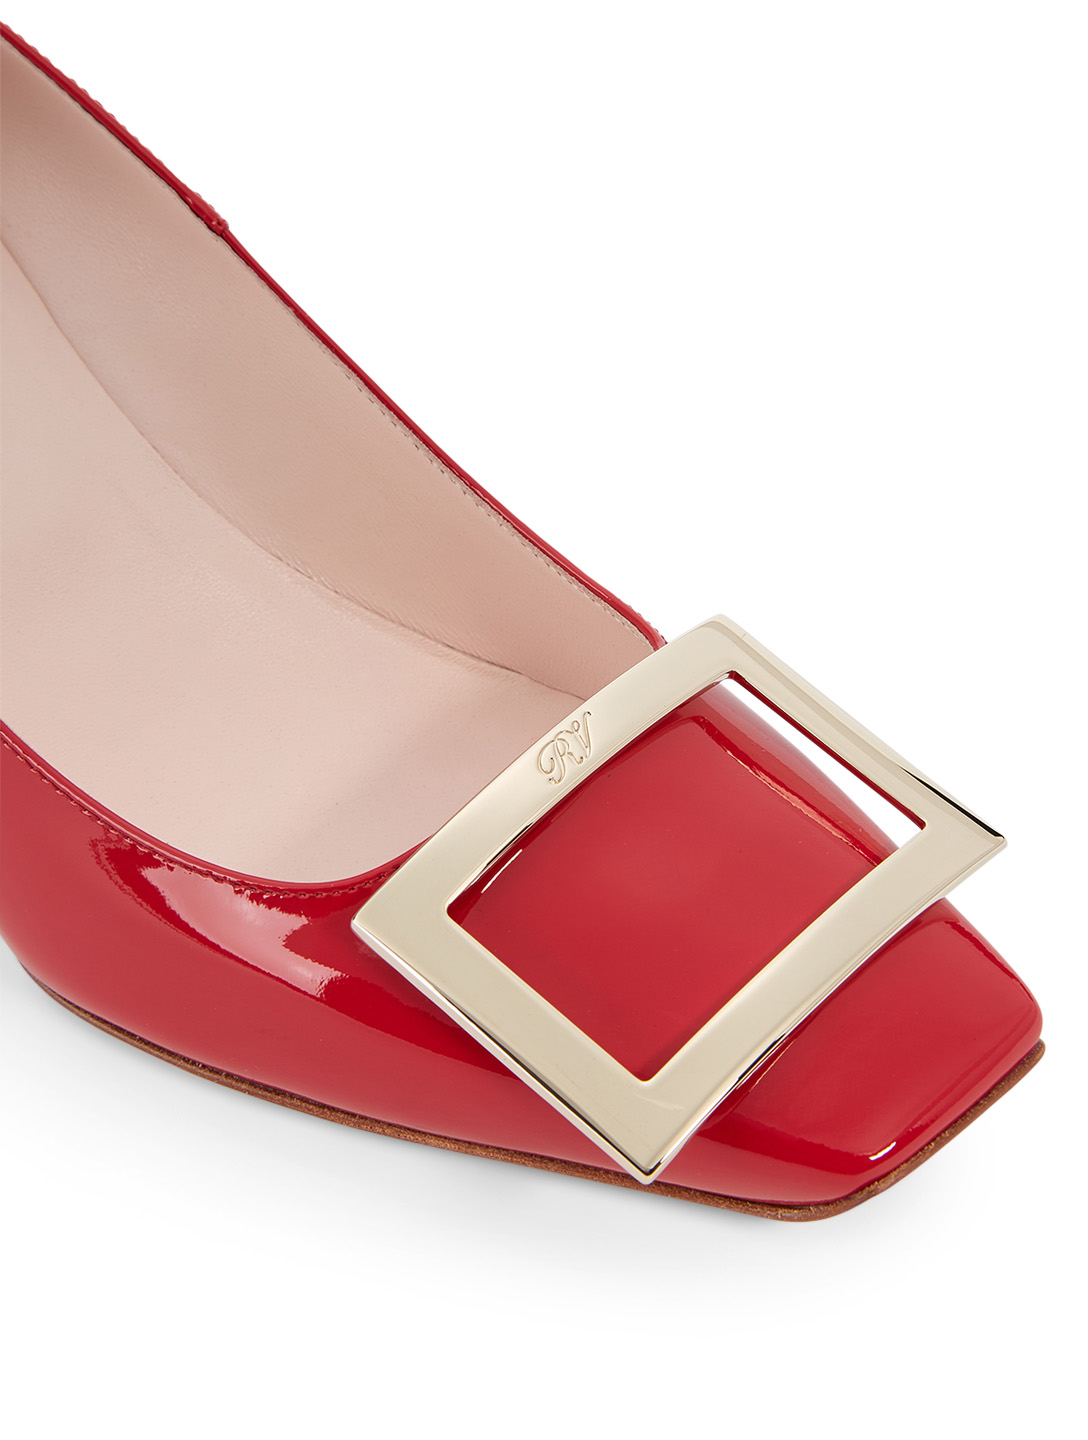 ROGER VIVIER Belle Vivier Trompette 70 Patent Leather Pumps Women's Red